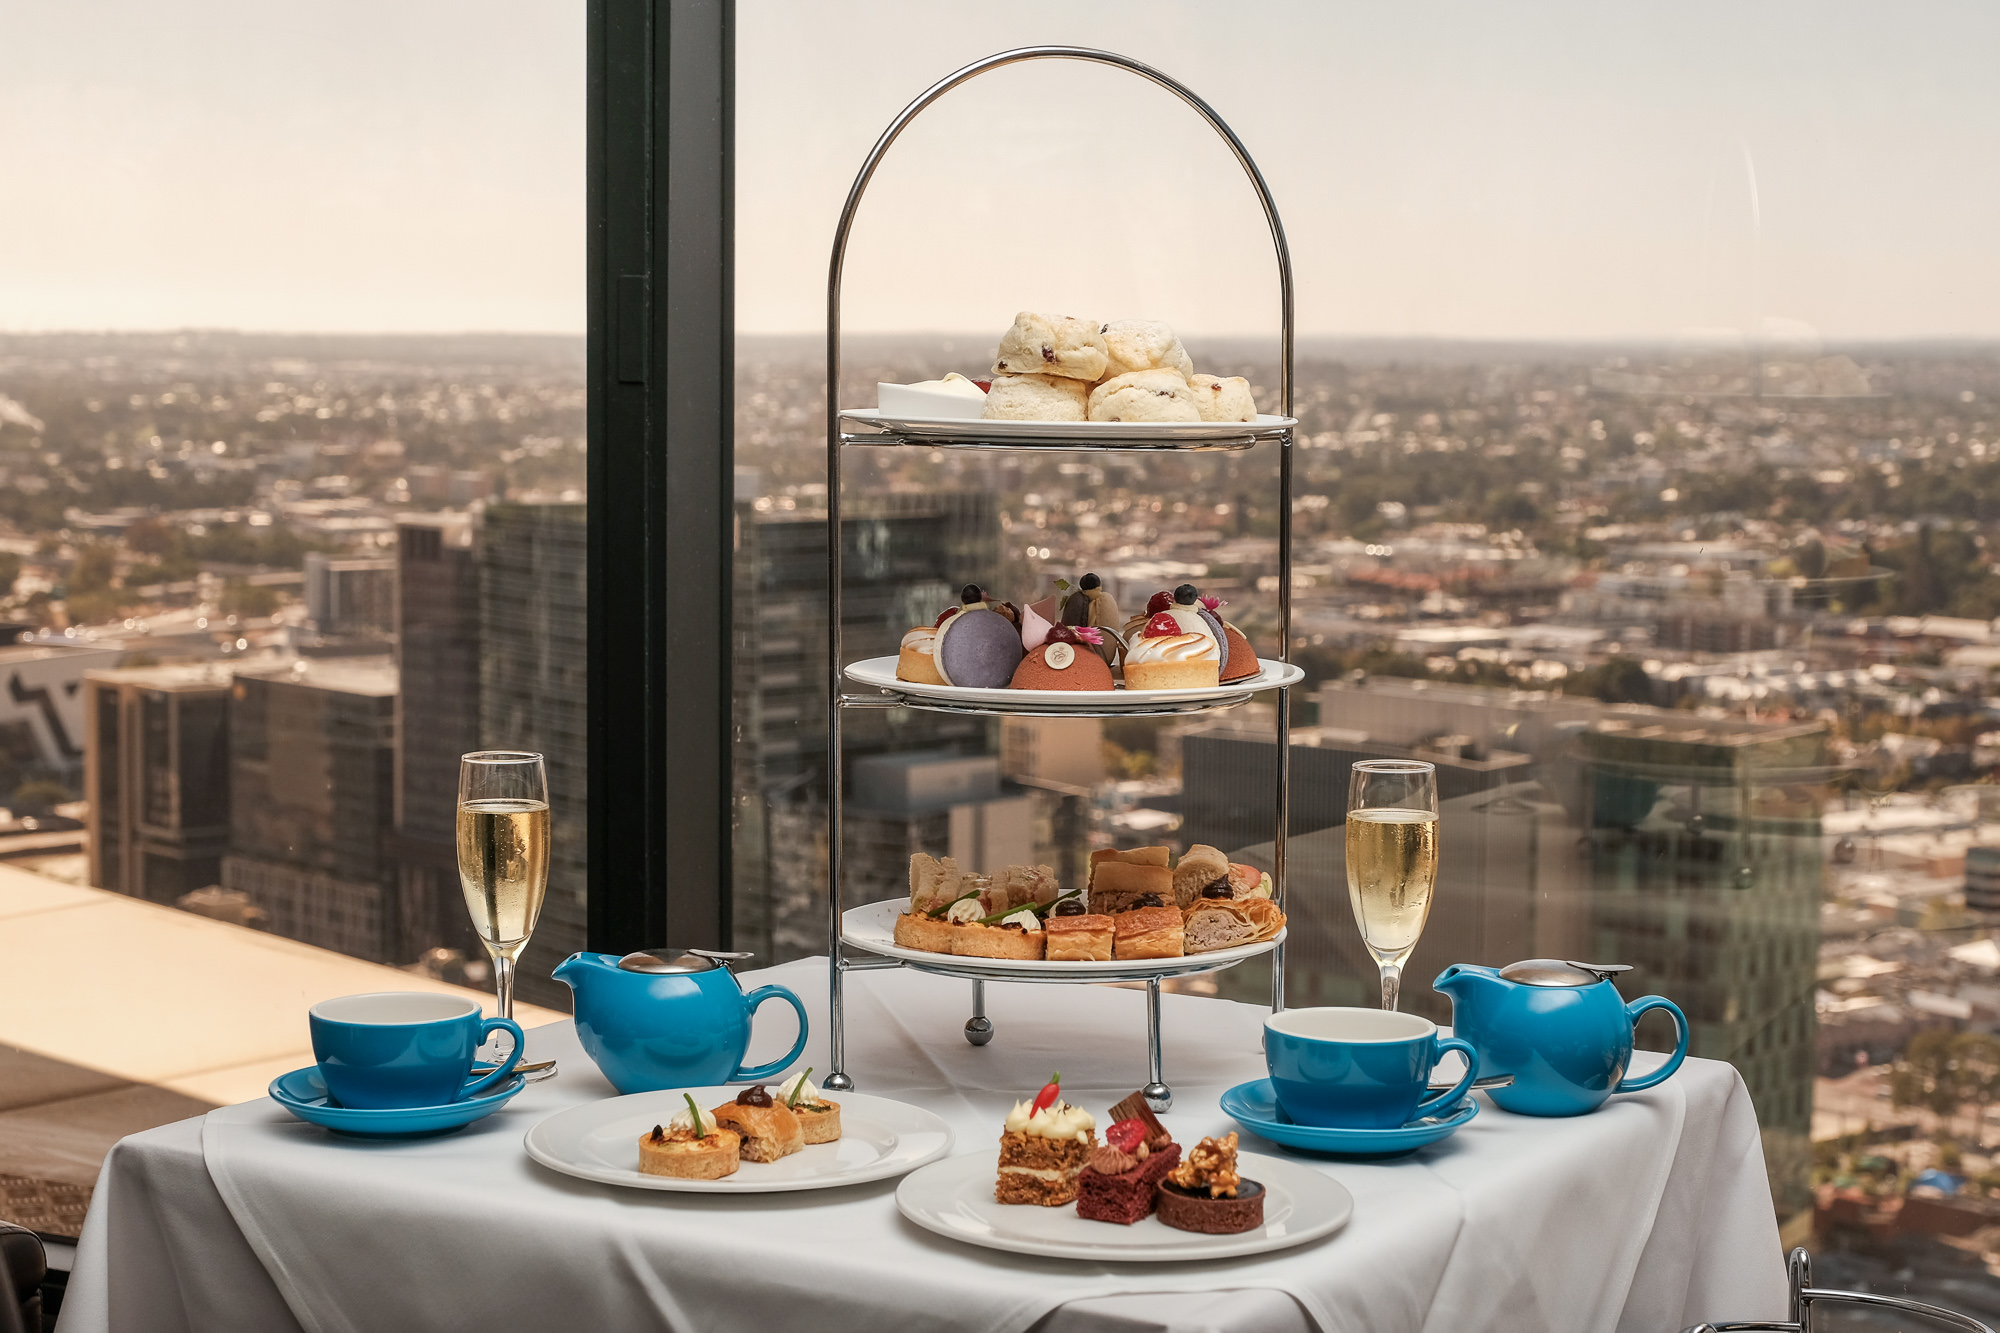 Three-tier high tea with scones, cakes and savoury treats with two glasses of bubbly overlooking Perth